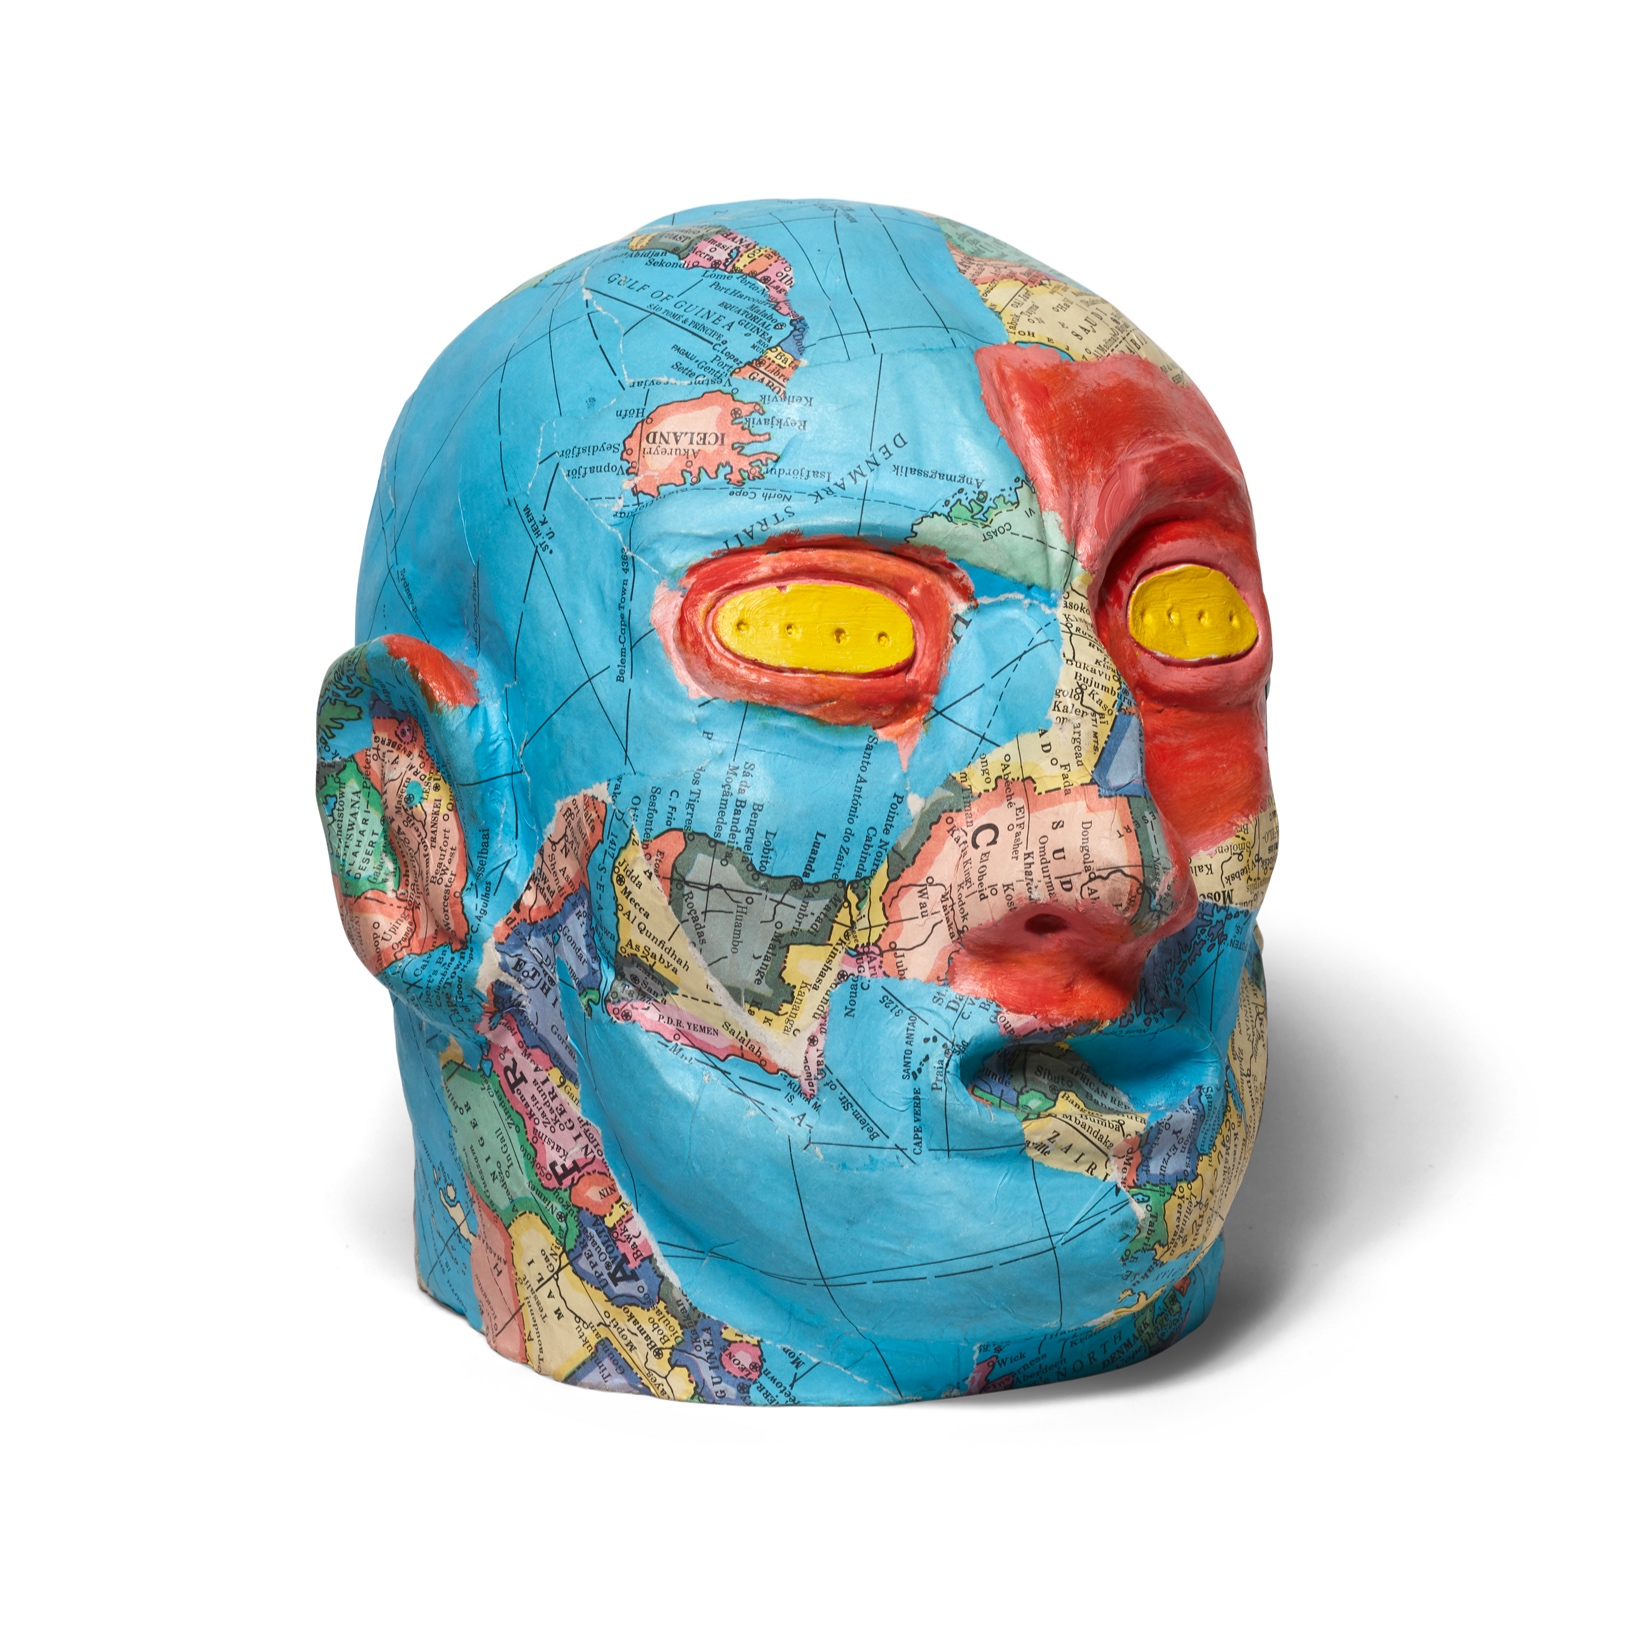 David Wojnarowicz   Head #5, from the Metamorphosis series  1984 Plaster head, individually painted, collaged 24,2 x 24,1 x 24,1 cm